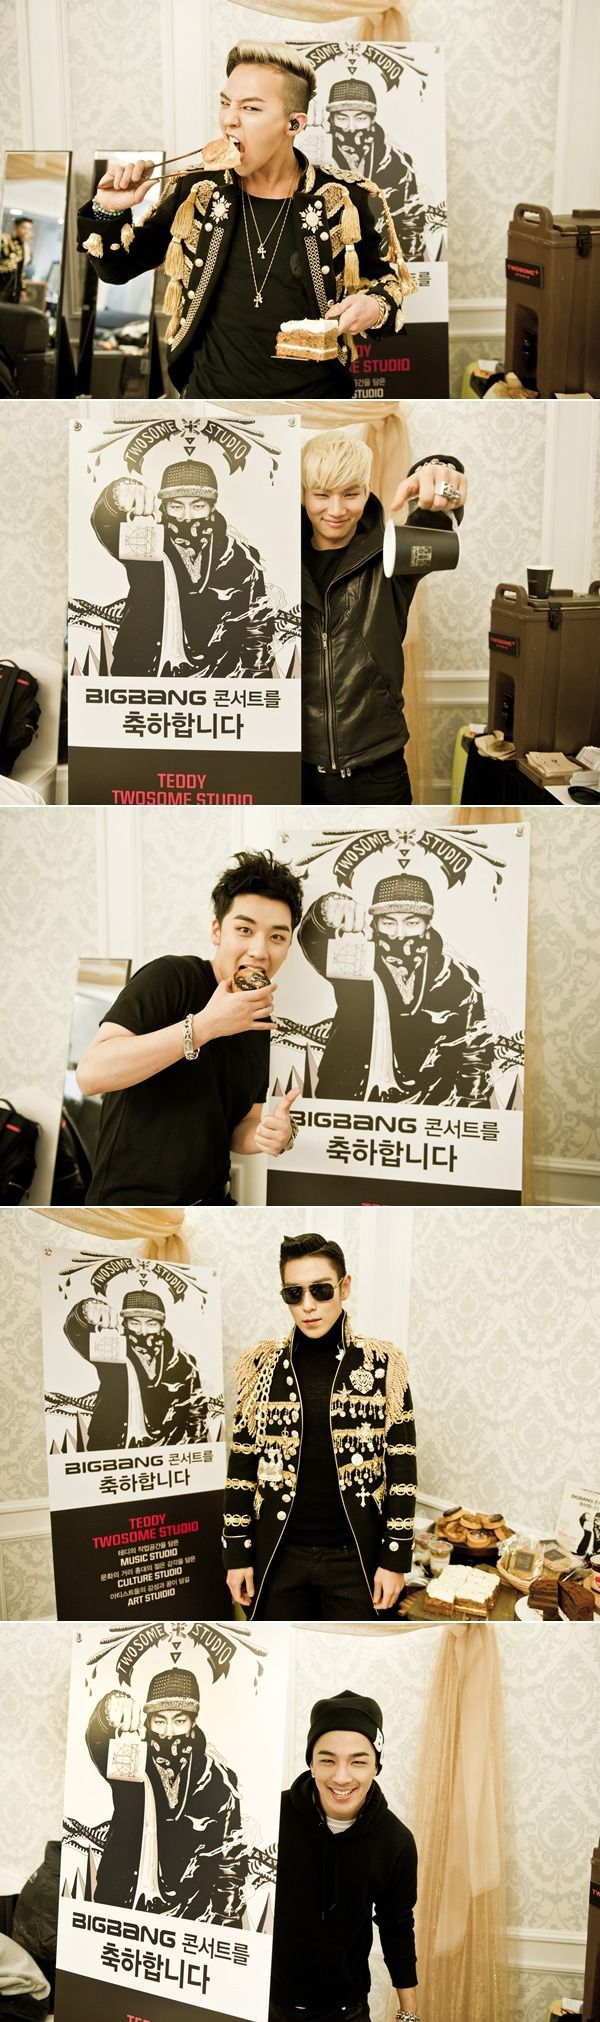 Bigbang is VIP :)